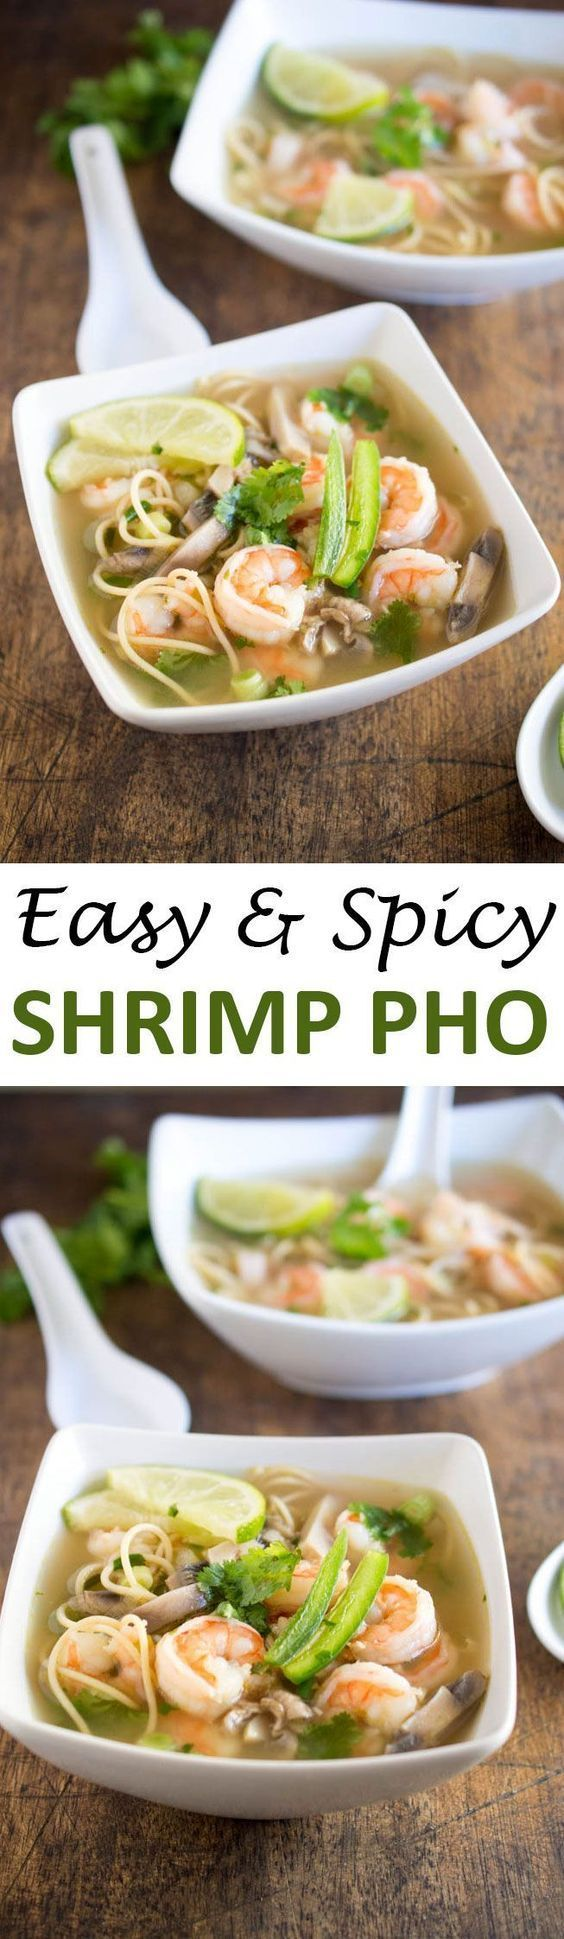 Spicy Shrimp Pho